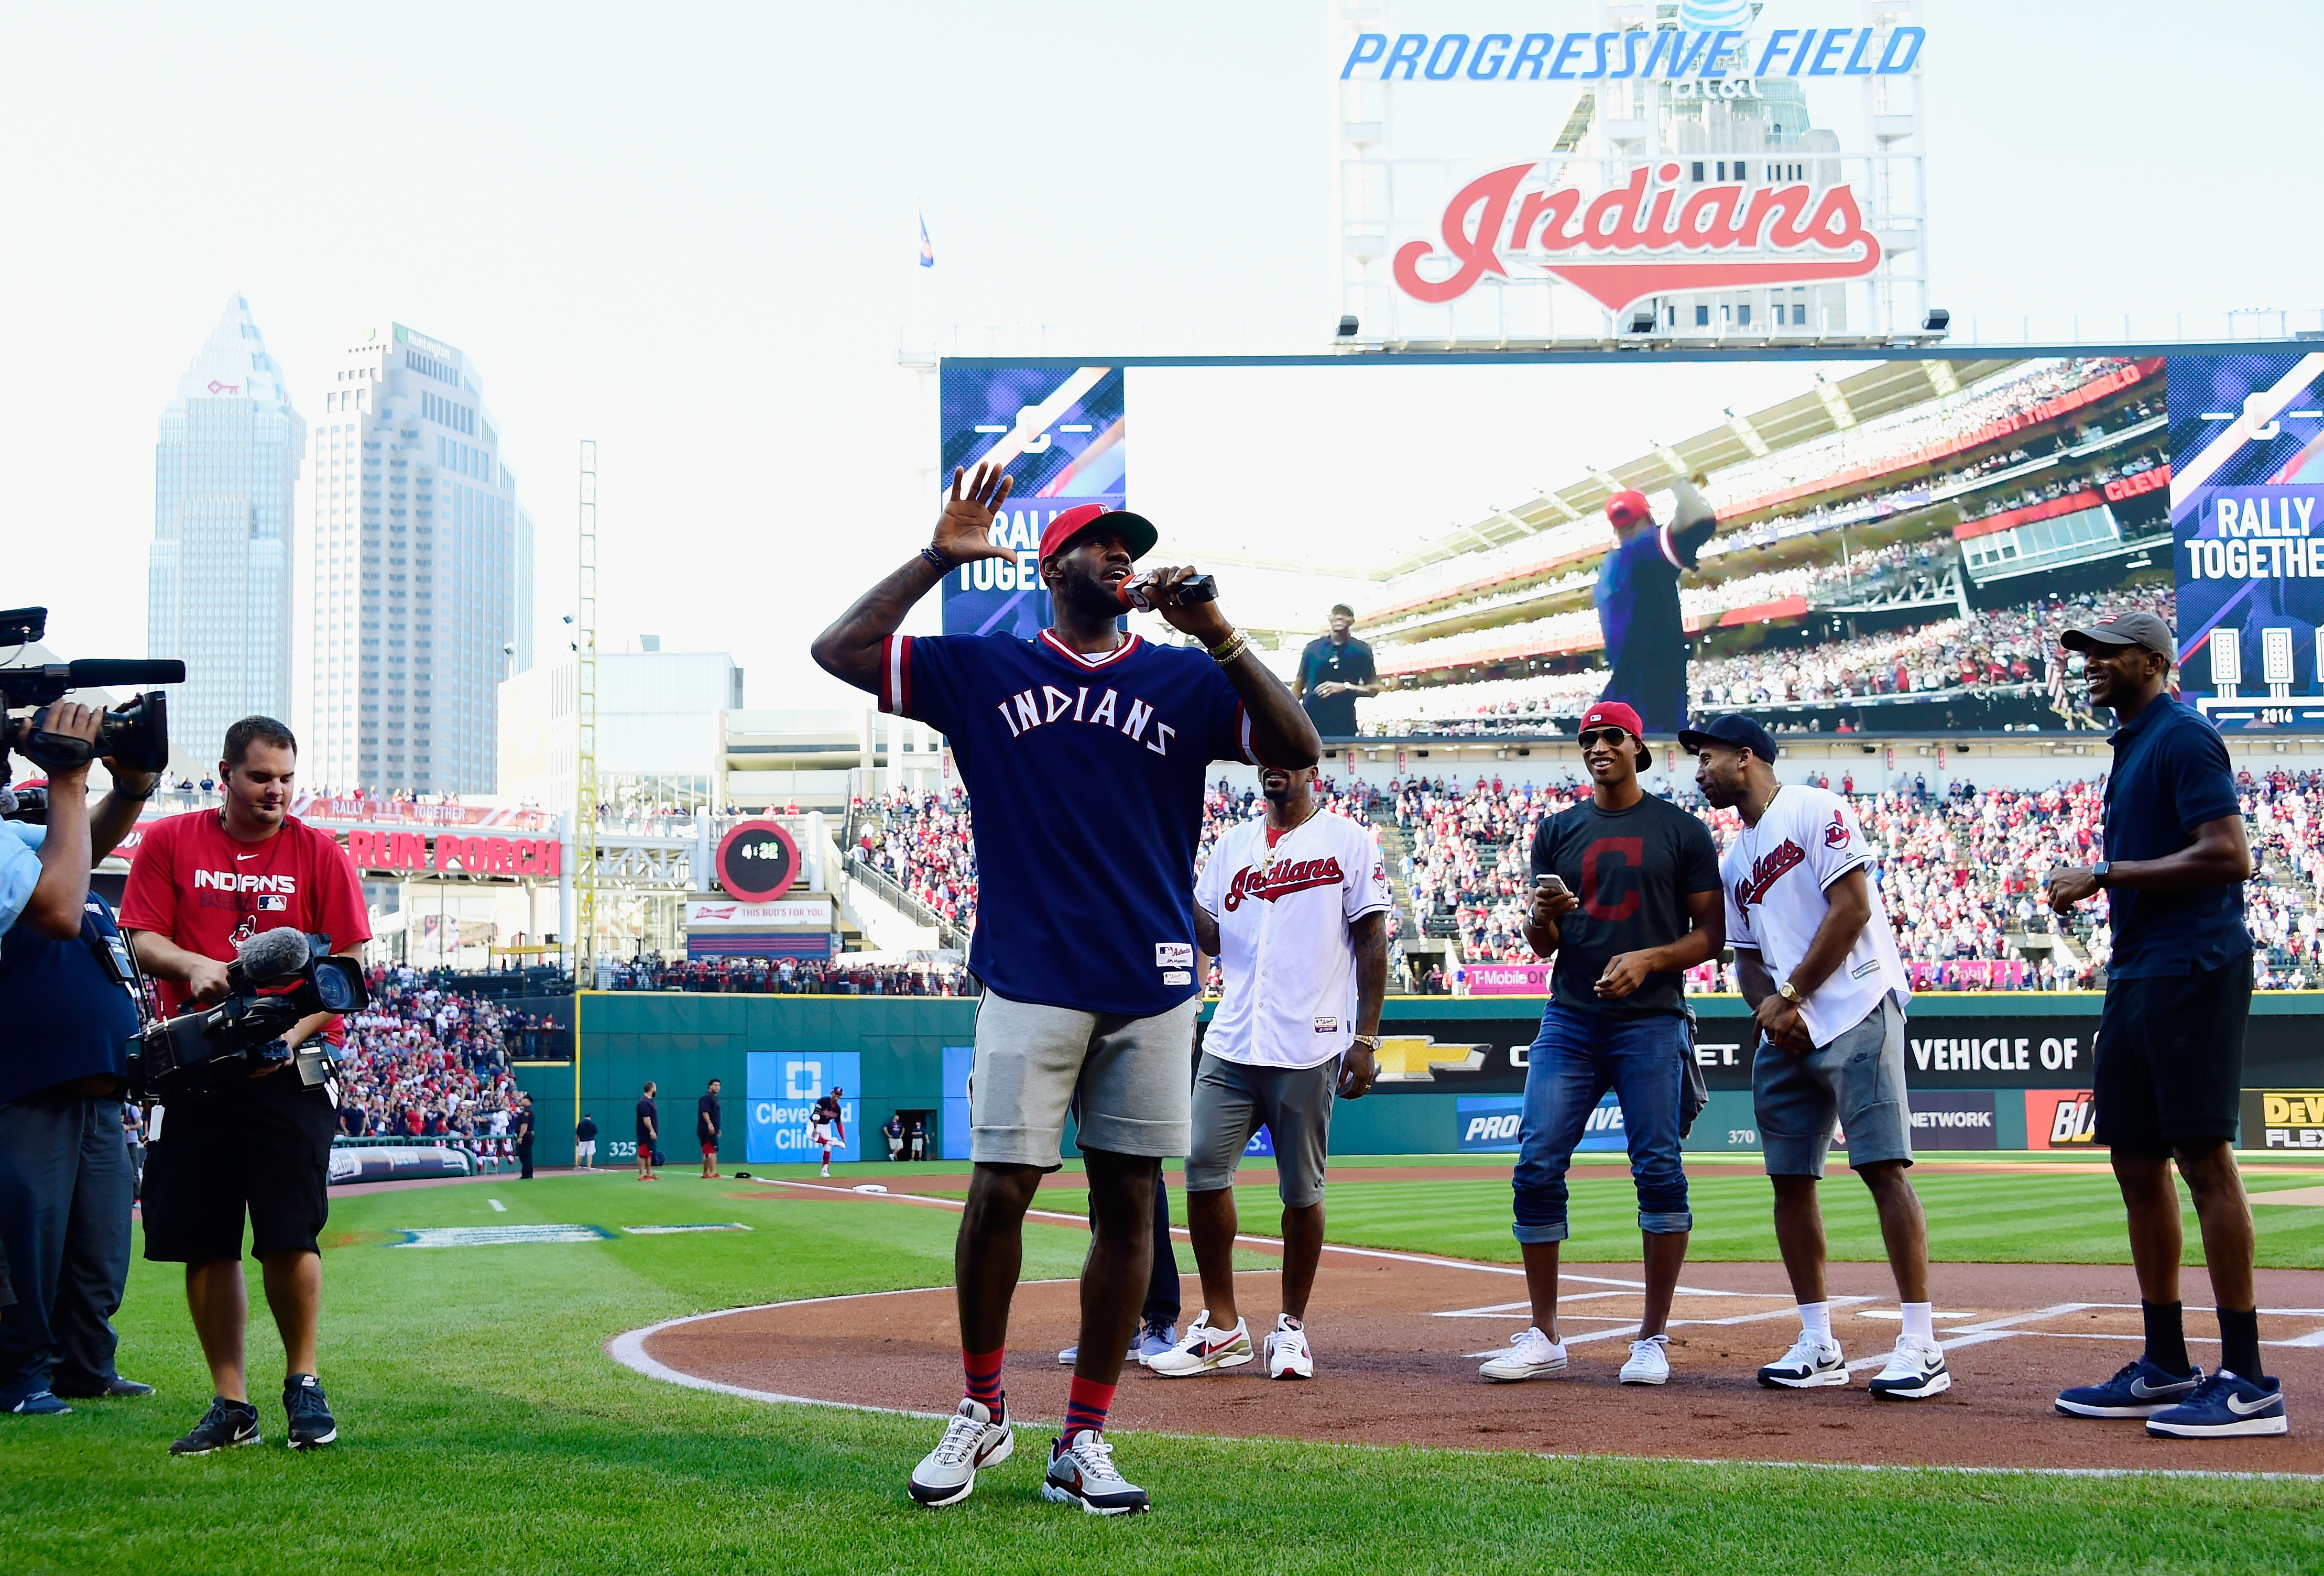 LeBron James #23 of the Cleveland Cavaliers addresses the crowd prior to game two of the American League Divison Series between the Boston Red Sox and the Cleveland Indians at Progressive Field on October 7, 2016 in Cleveland, Ohio. (Photo by Jason Miller/Getty Images)